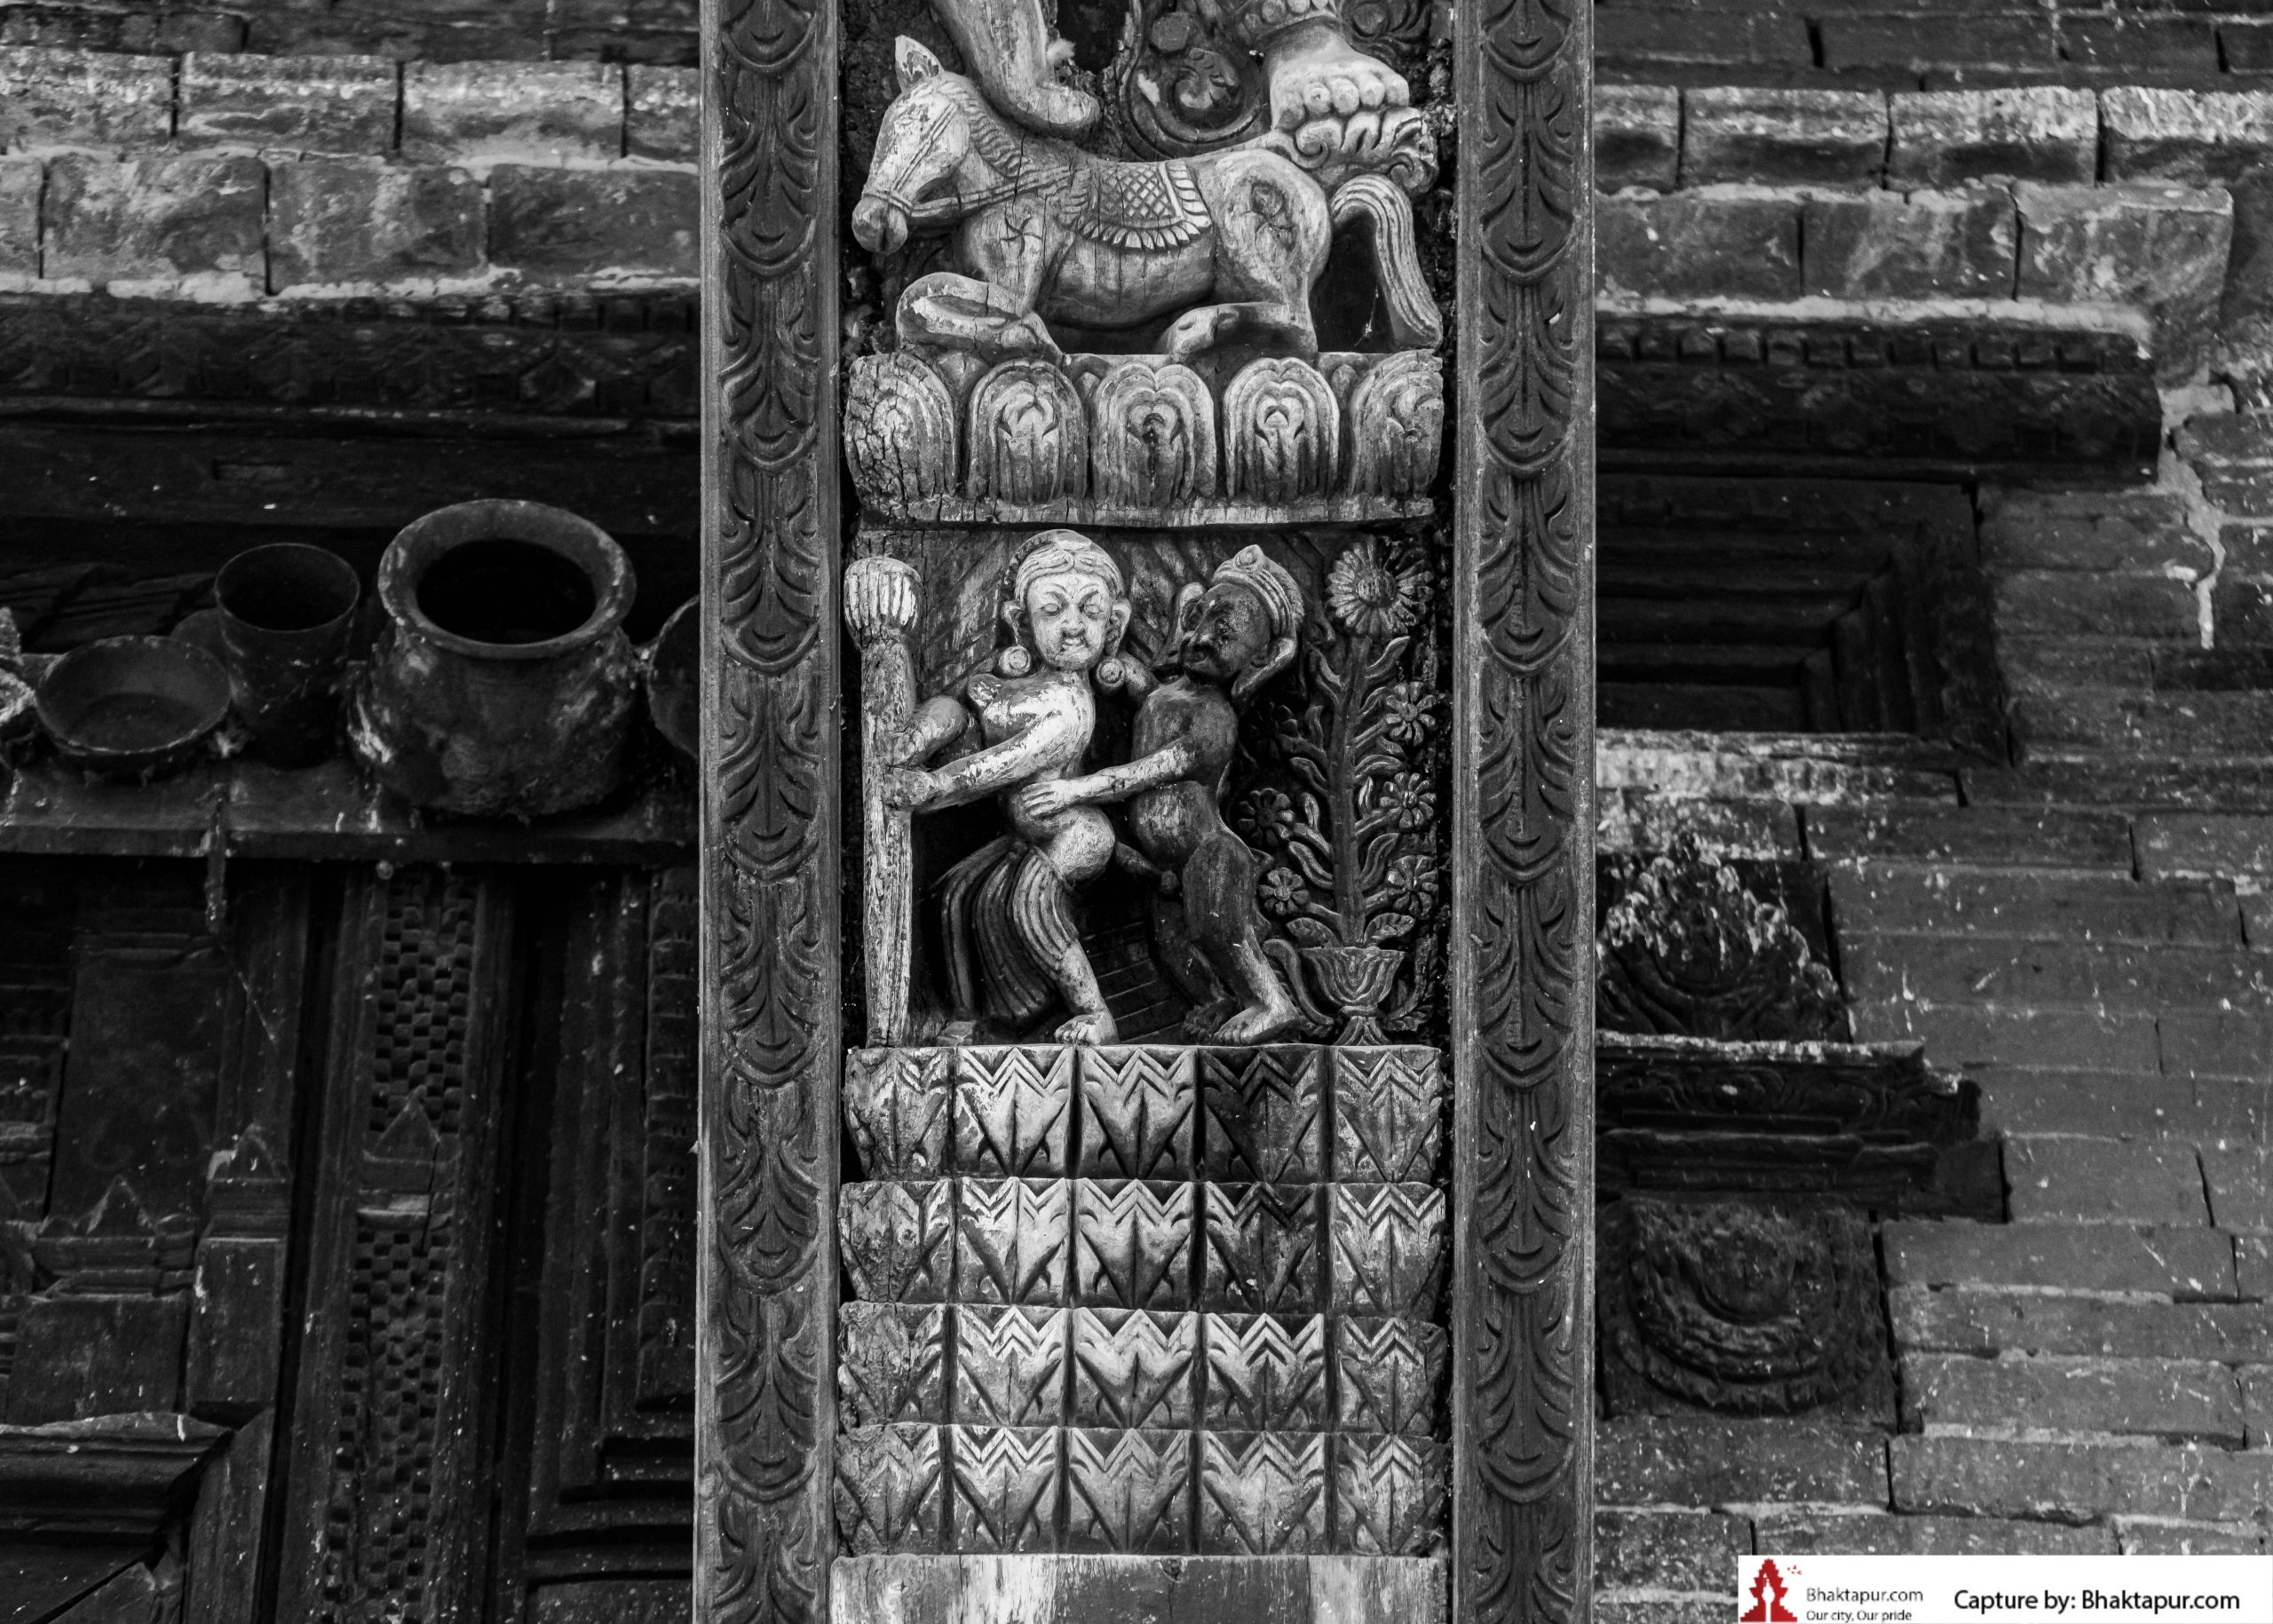 https://www.bhaktapur.com/wp-content/uploads/2021/08/erotic-carving-96-of-137-scaled.jpg